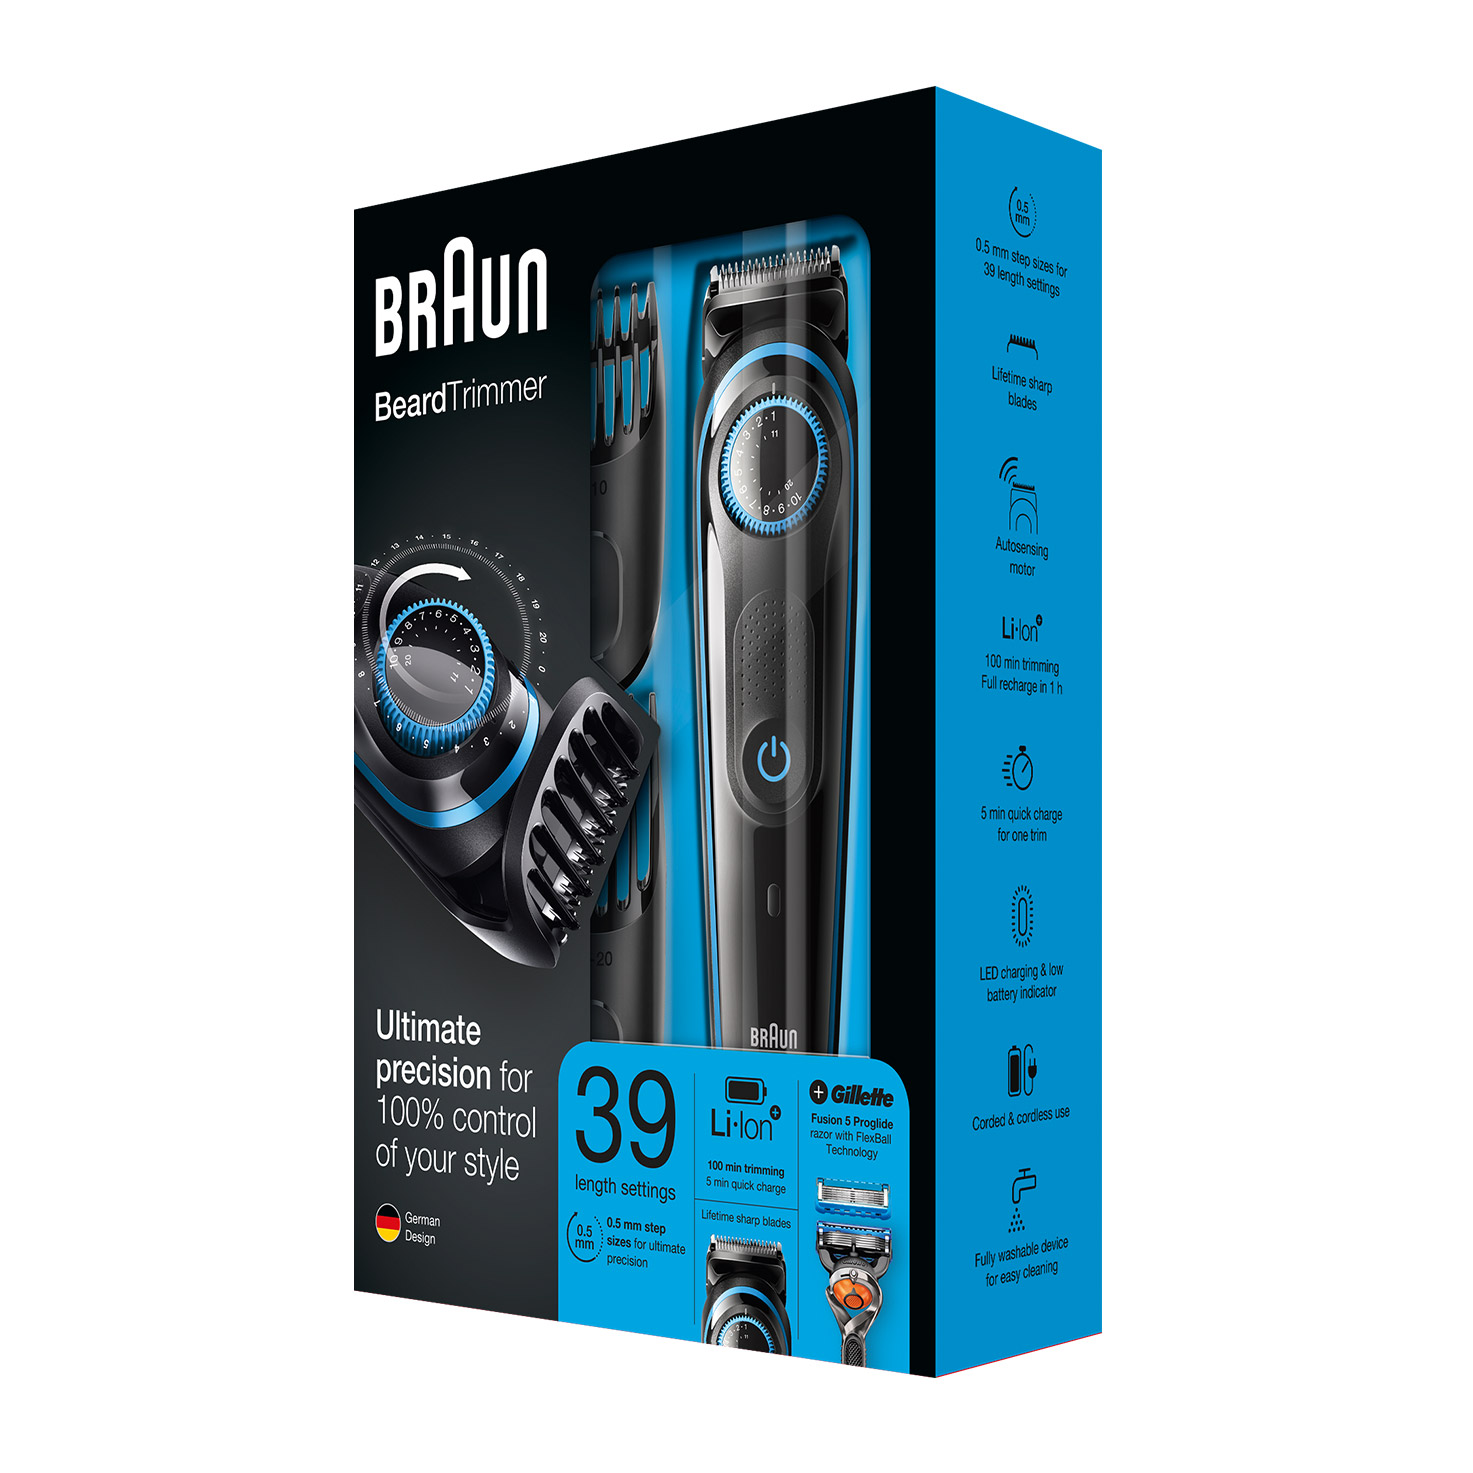 Braun Beard Trimmer BT5040